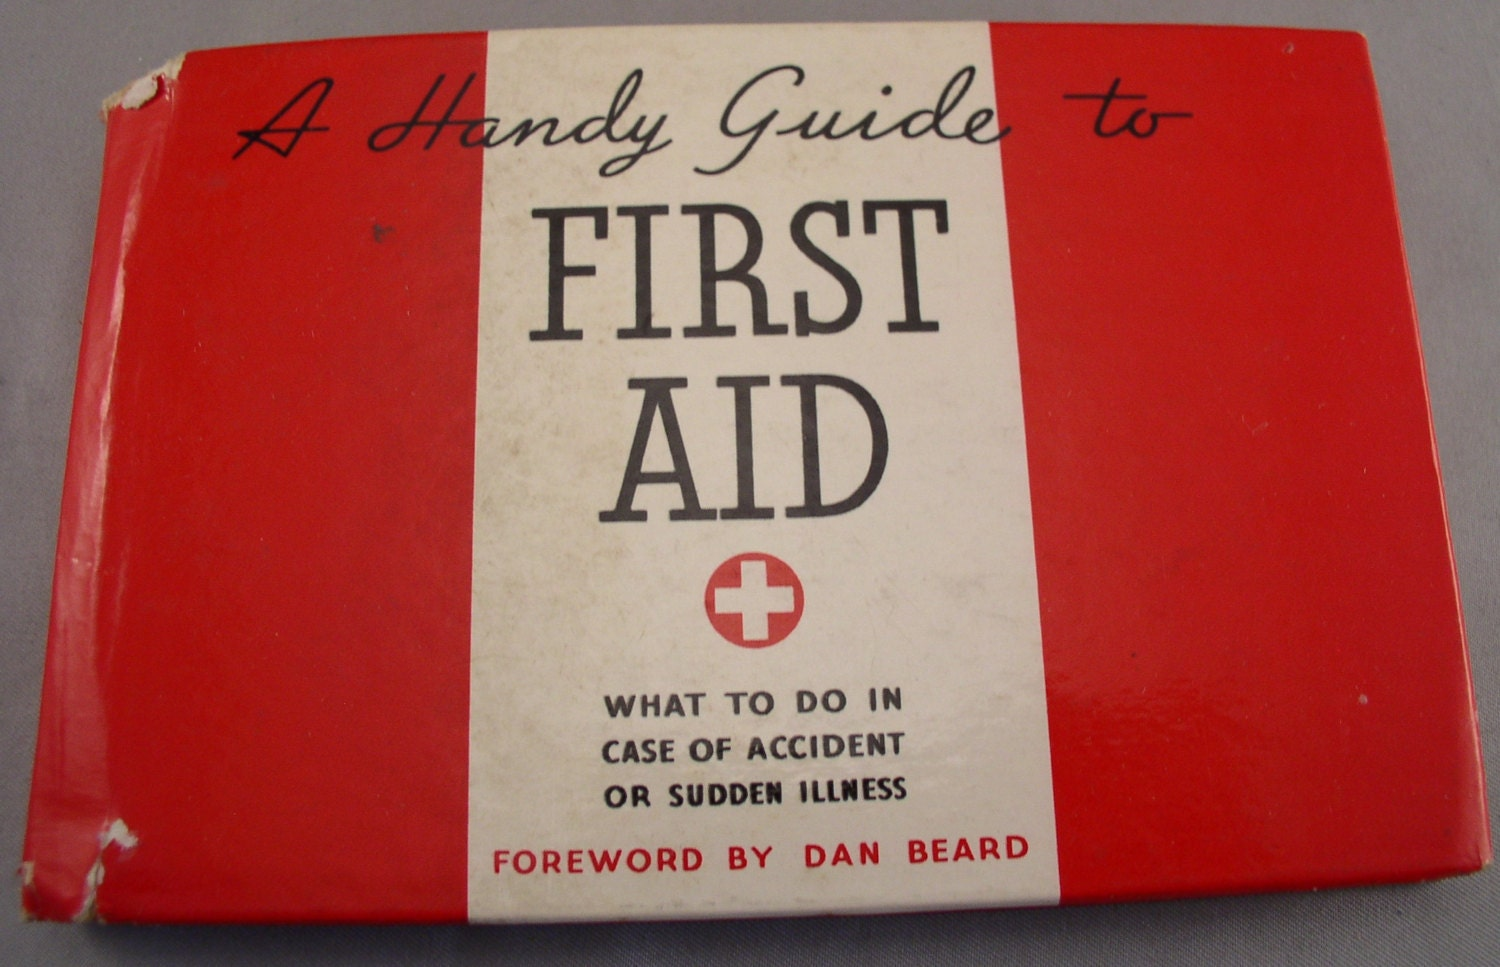 pocket guide on first aid Knowing how to make a first aid kit for hiking along with some basic first aid   this pocket guide is a great reference that will help you use your first aid kit in an .